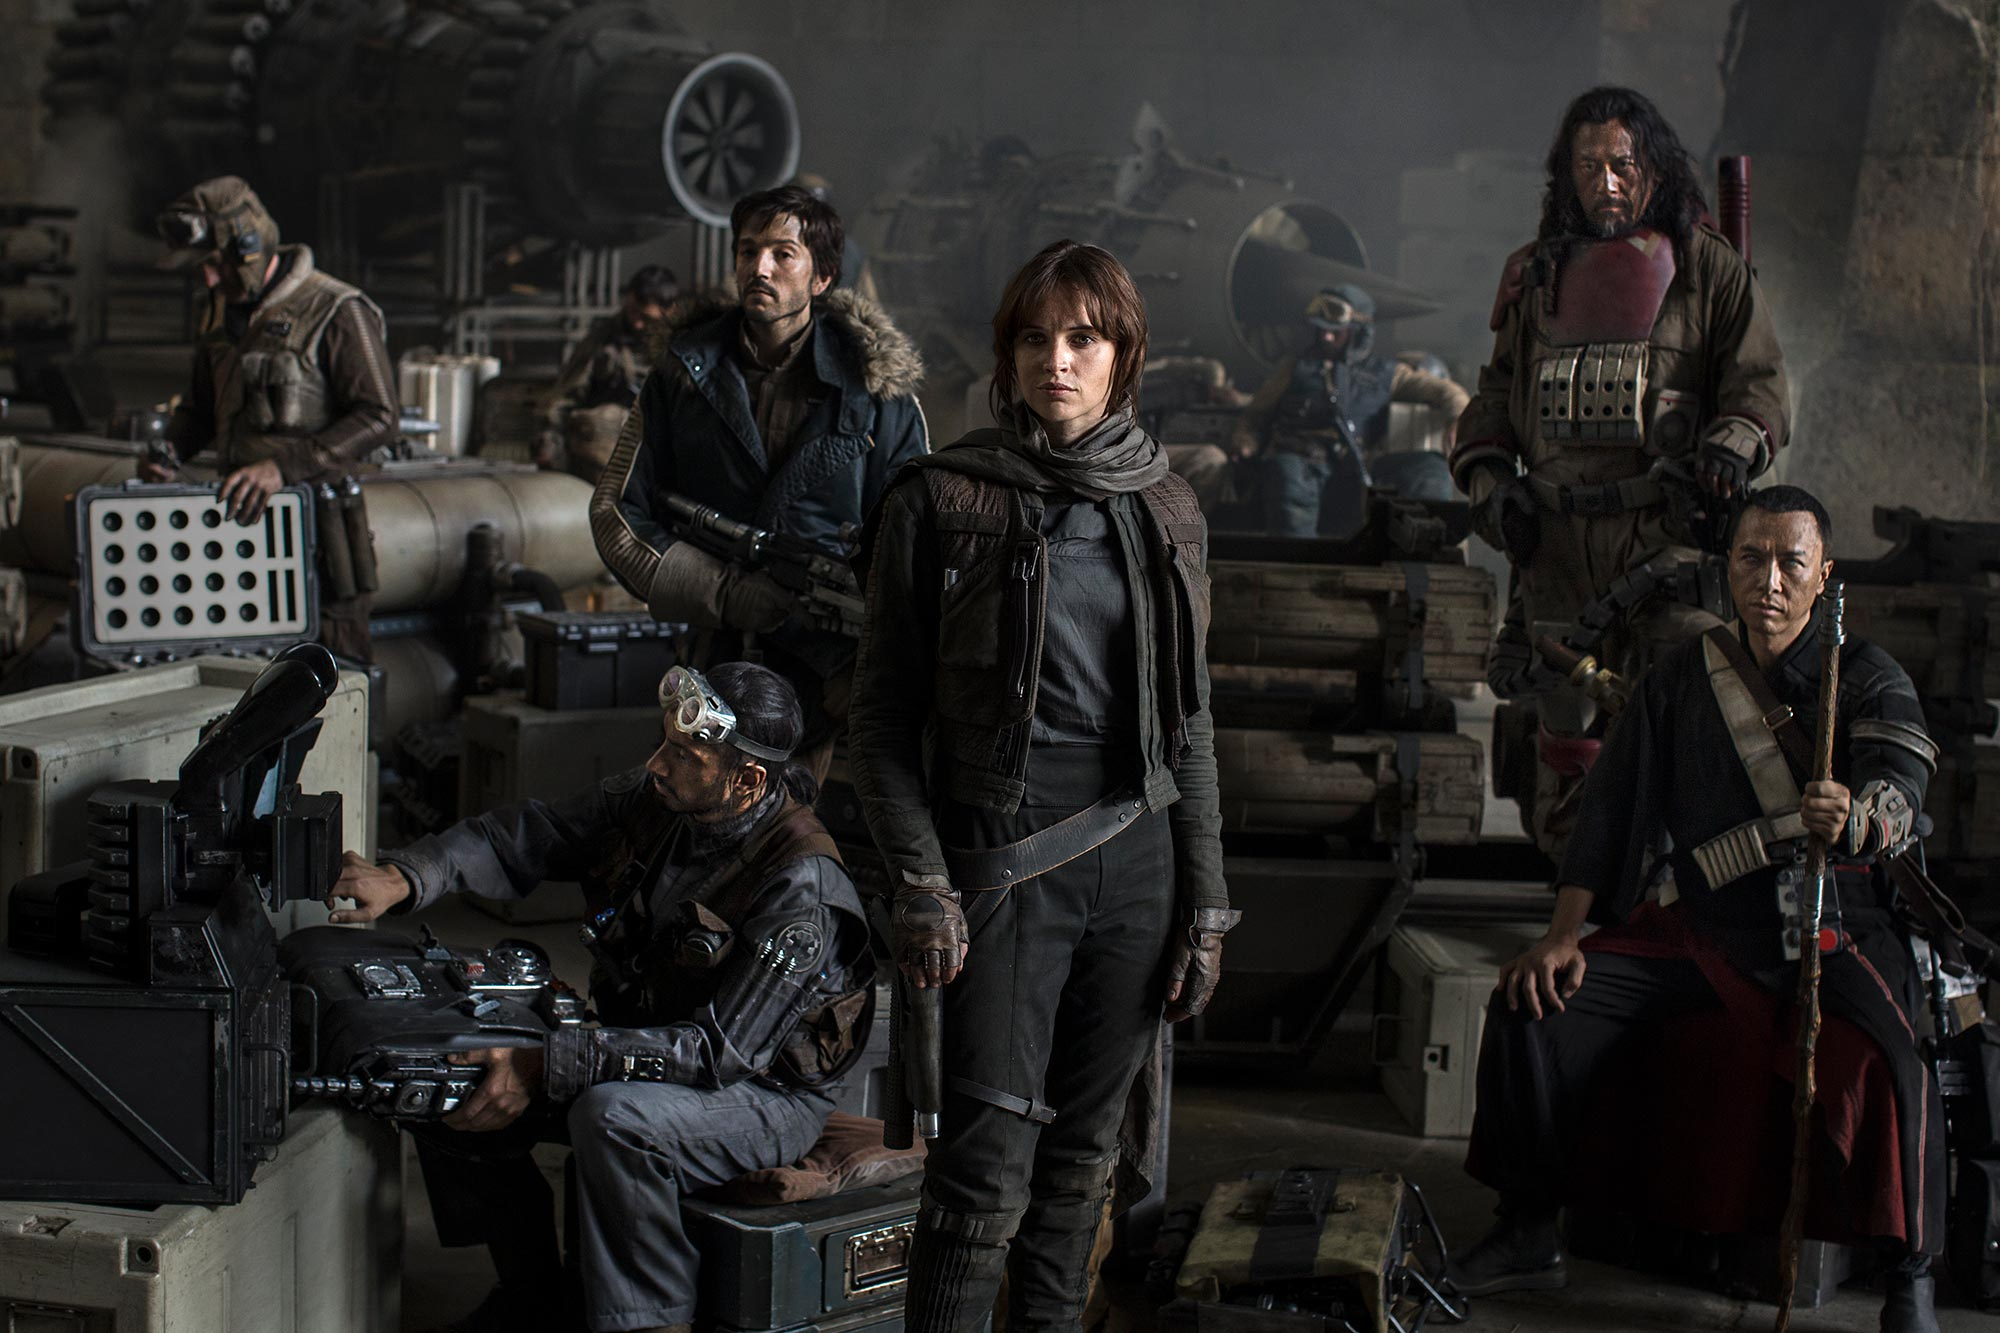 Star Wars Ranking Rogue One: A Star Wars Story